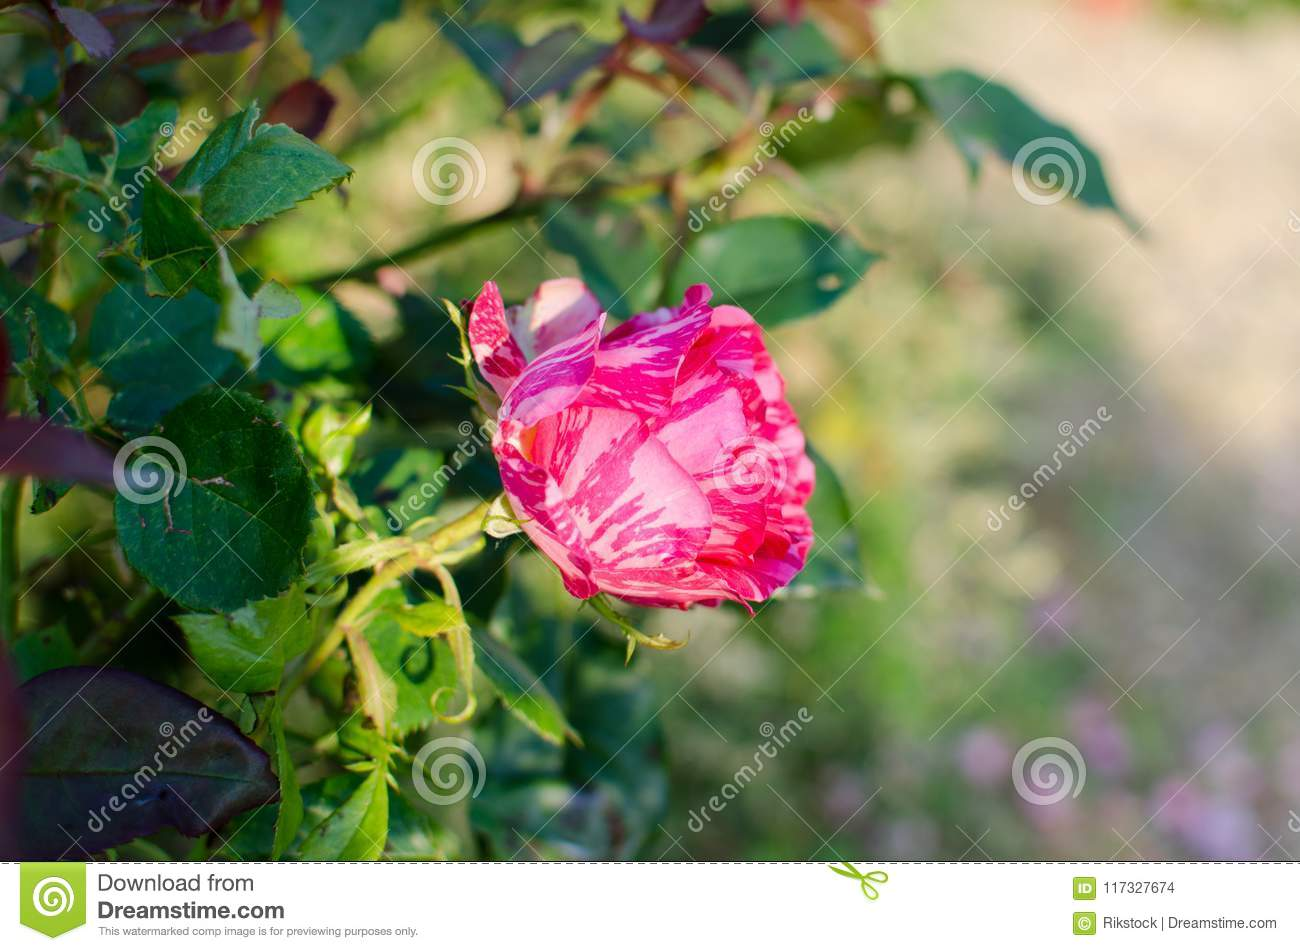 Rare Rose With Unrivaled Beauty Stock Photo Image Of Flower